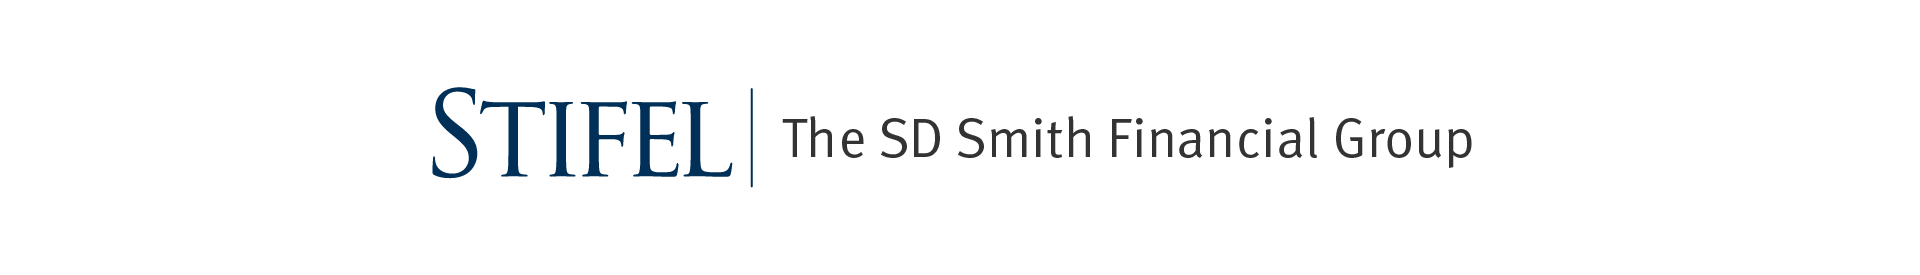 Our Experience Stifel Sd Smith Financial Group Financial